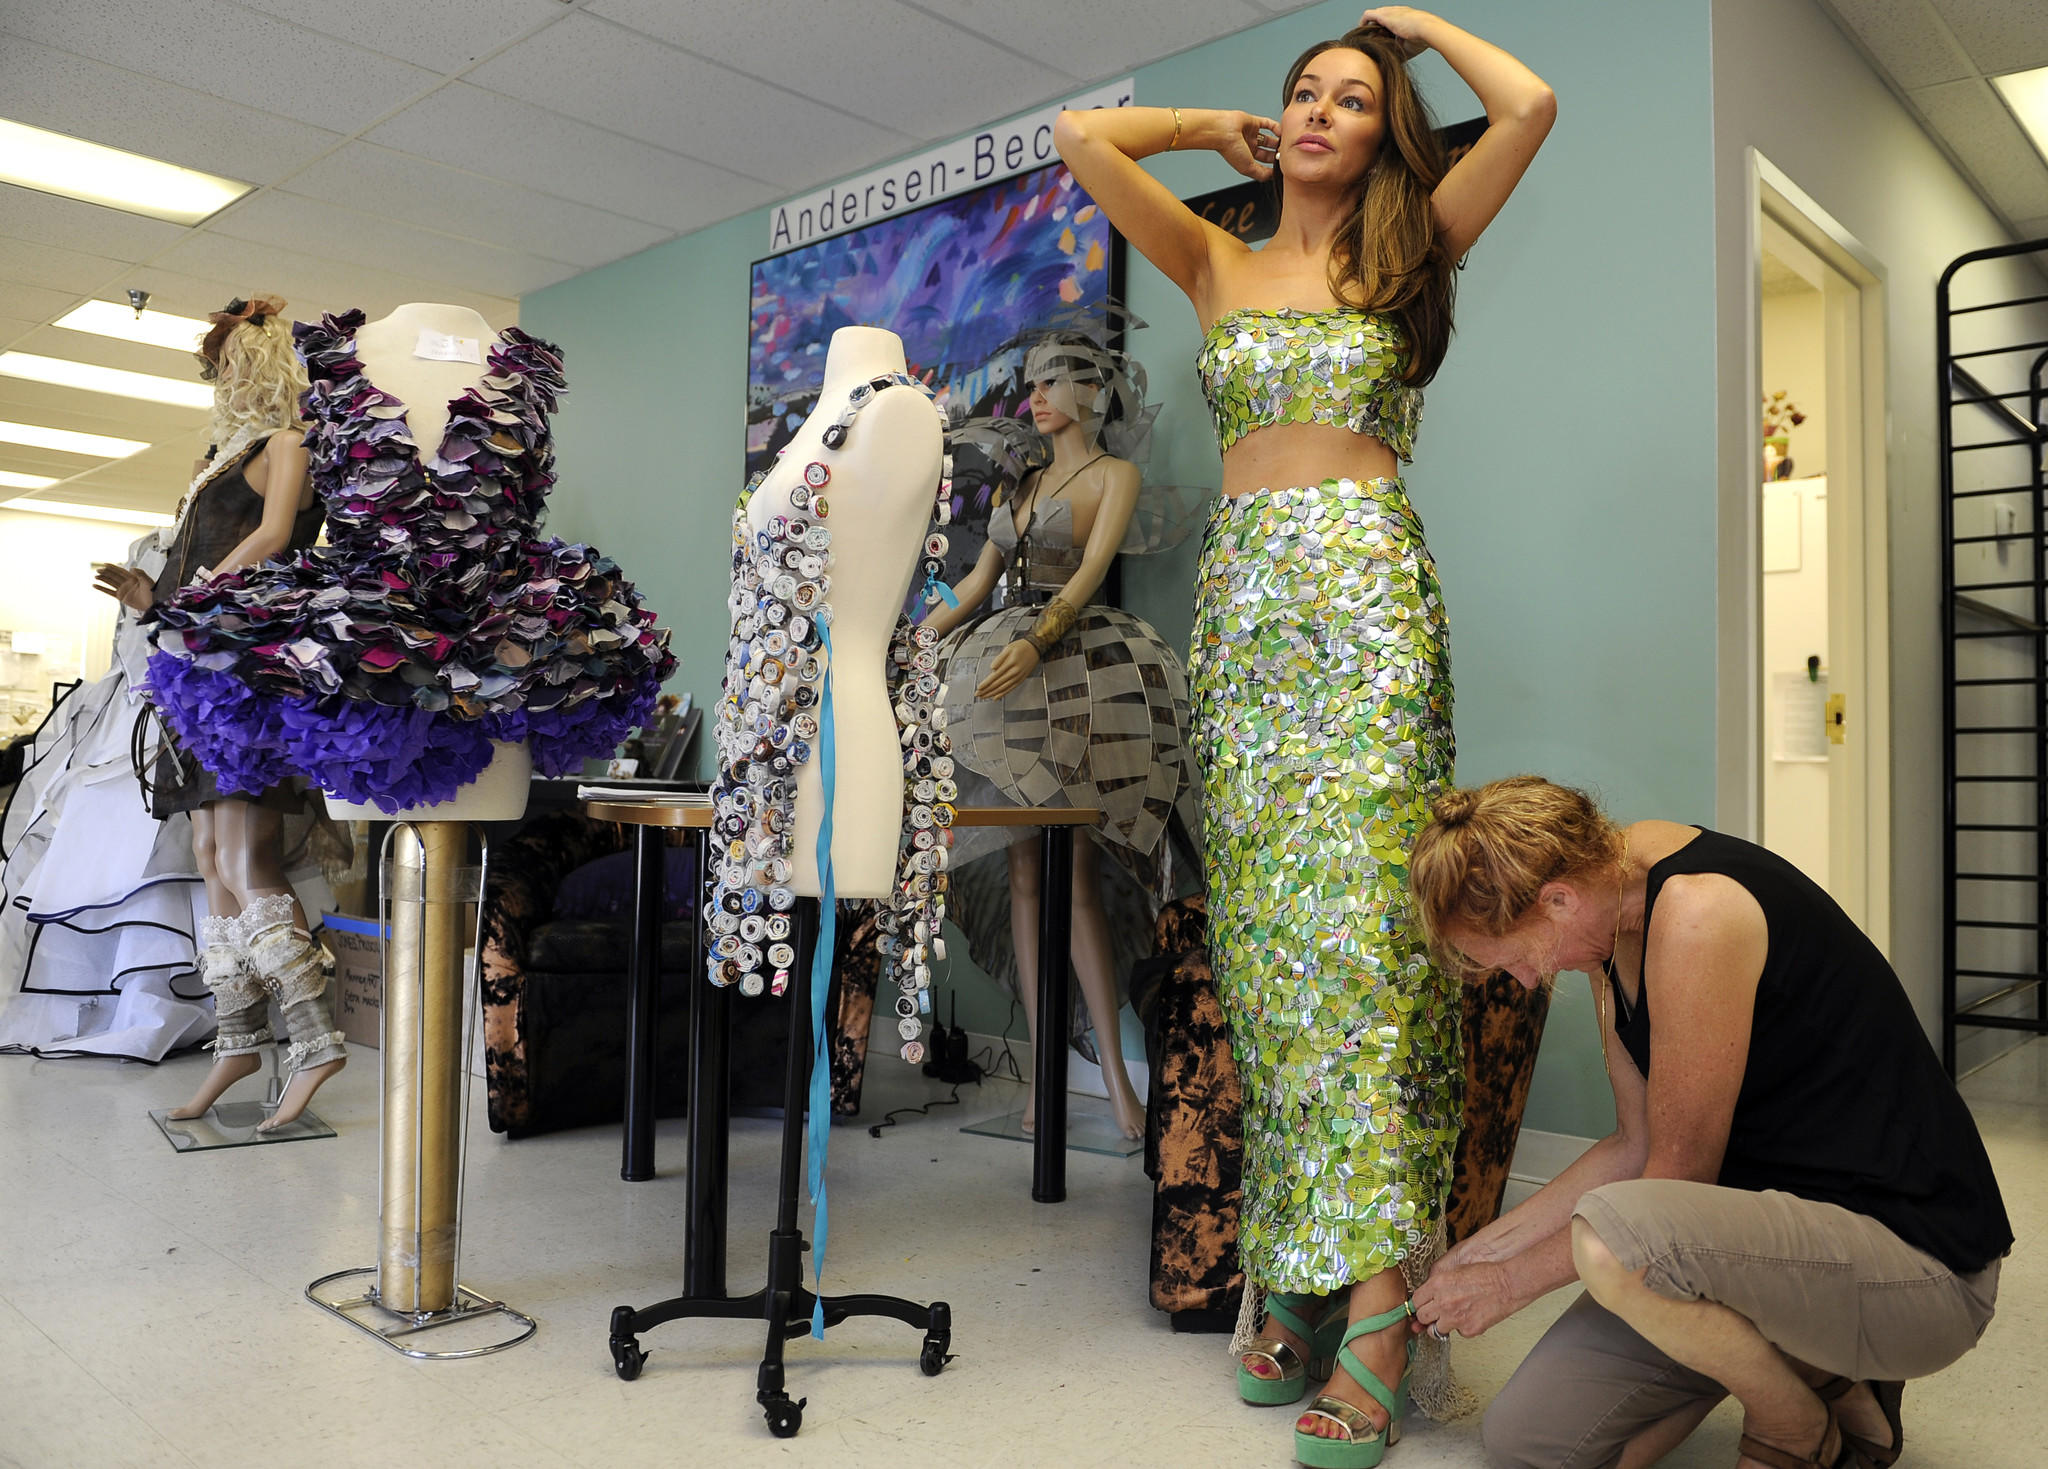 "Laurel, MD--June 17, 2014--Model Gretchen Kuppers of Baltimore, who is wearing a ""Metal Mermaid"" outfit which is made with soda can pieces, gets help buckling her shoes from Lee Andersen, right, a fashion designer and founder of ManneqART. Ms. Andersen runs an annual contest for hair and makeup artists and wearable art designers. This morning models were trying on some of the outfits that will be worn in the competition on Sunday."